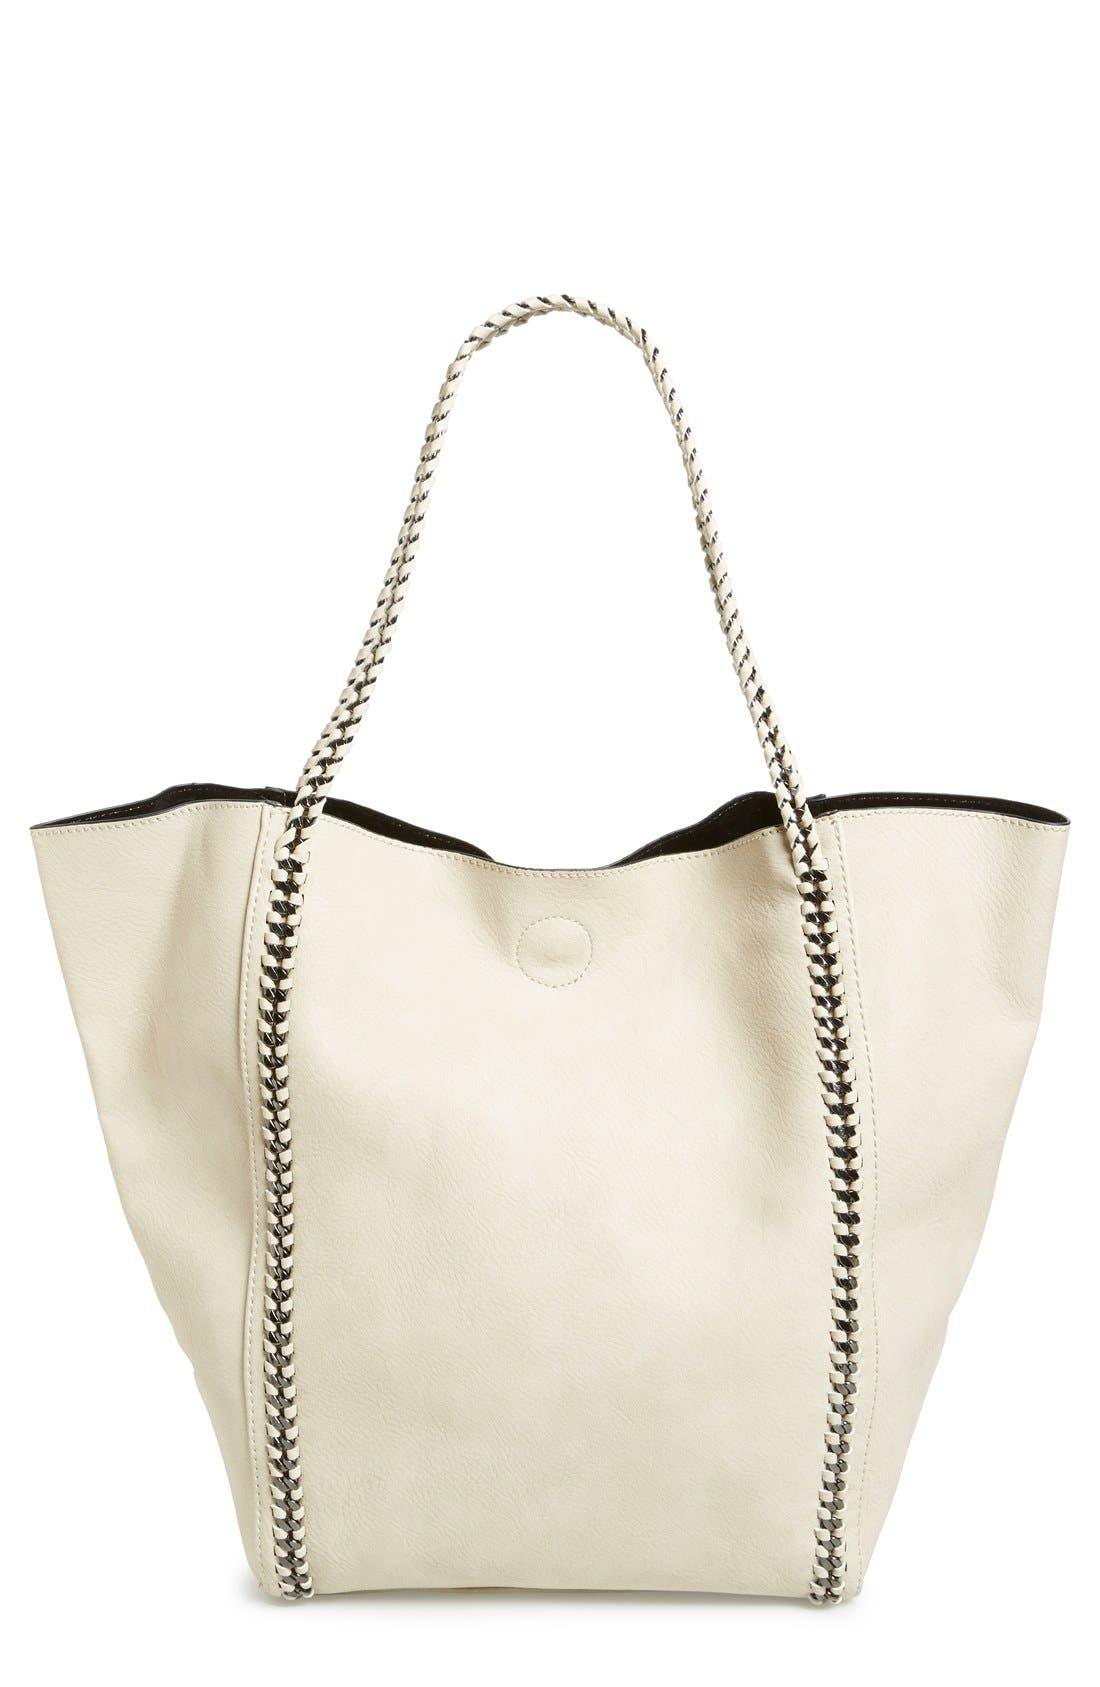 Alternate Image 1 Selected - Phase 3 Chain Faux Leather Tote